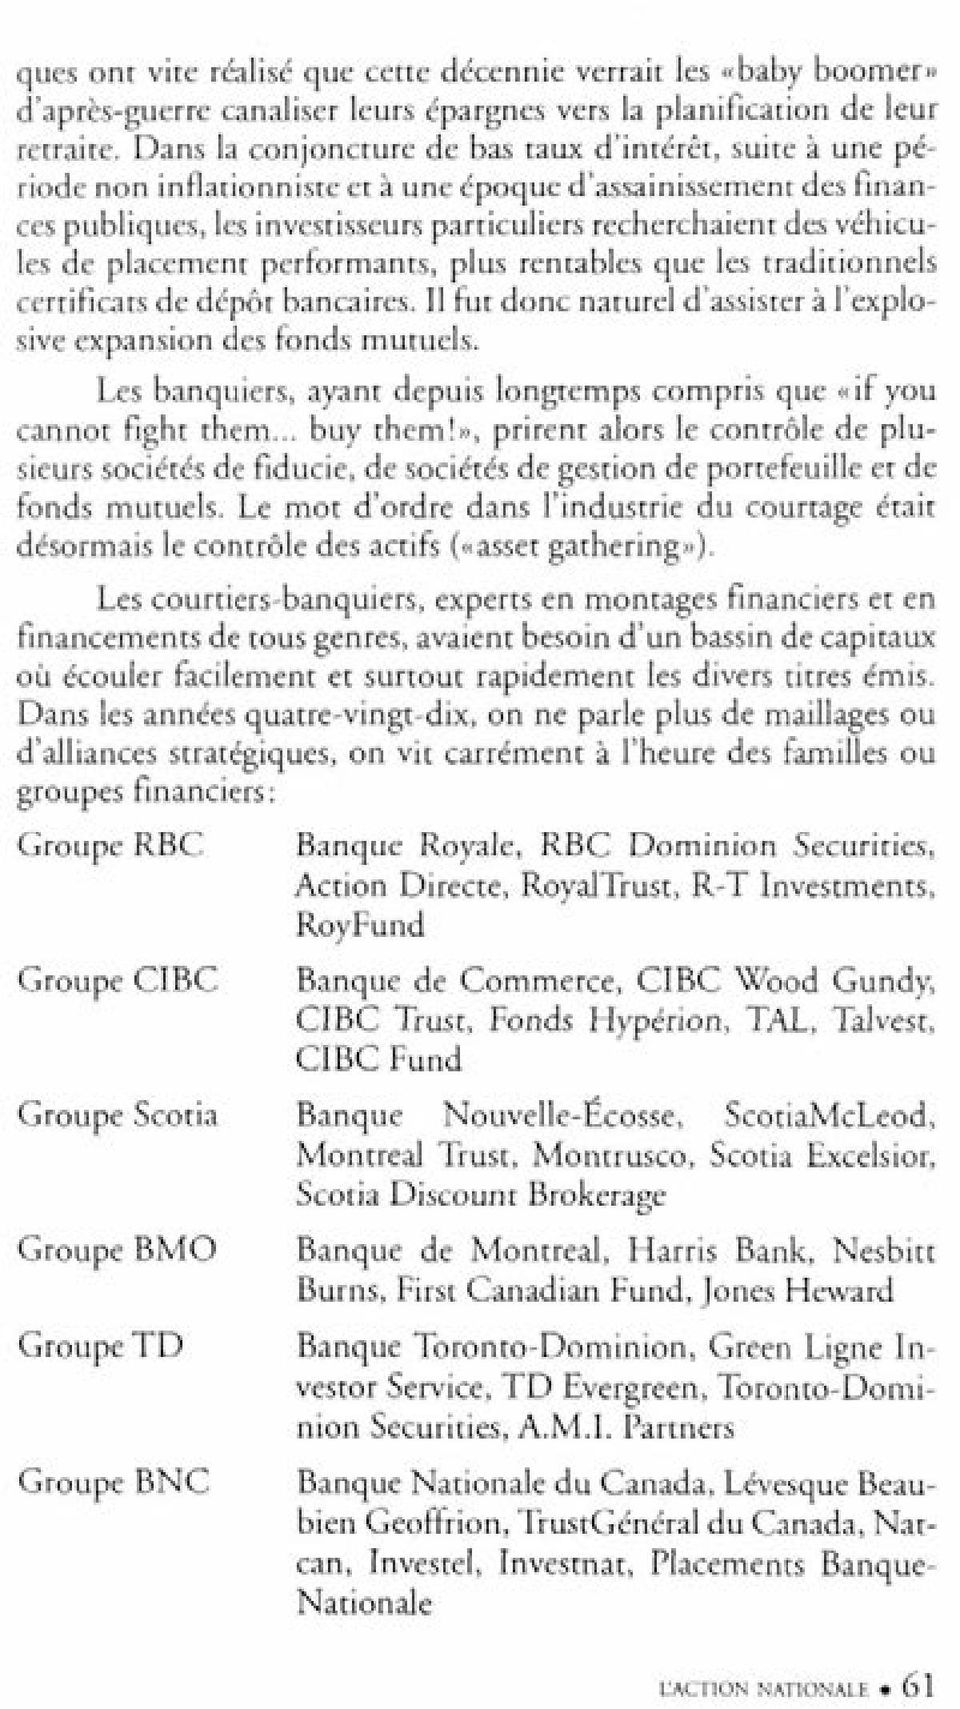 de placement performants, plus rentables que les traditionnels certificats de dépôt bancaires. Il fut donc naturel d'assister à l'explosive expansion des fonds mutuels.